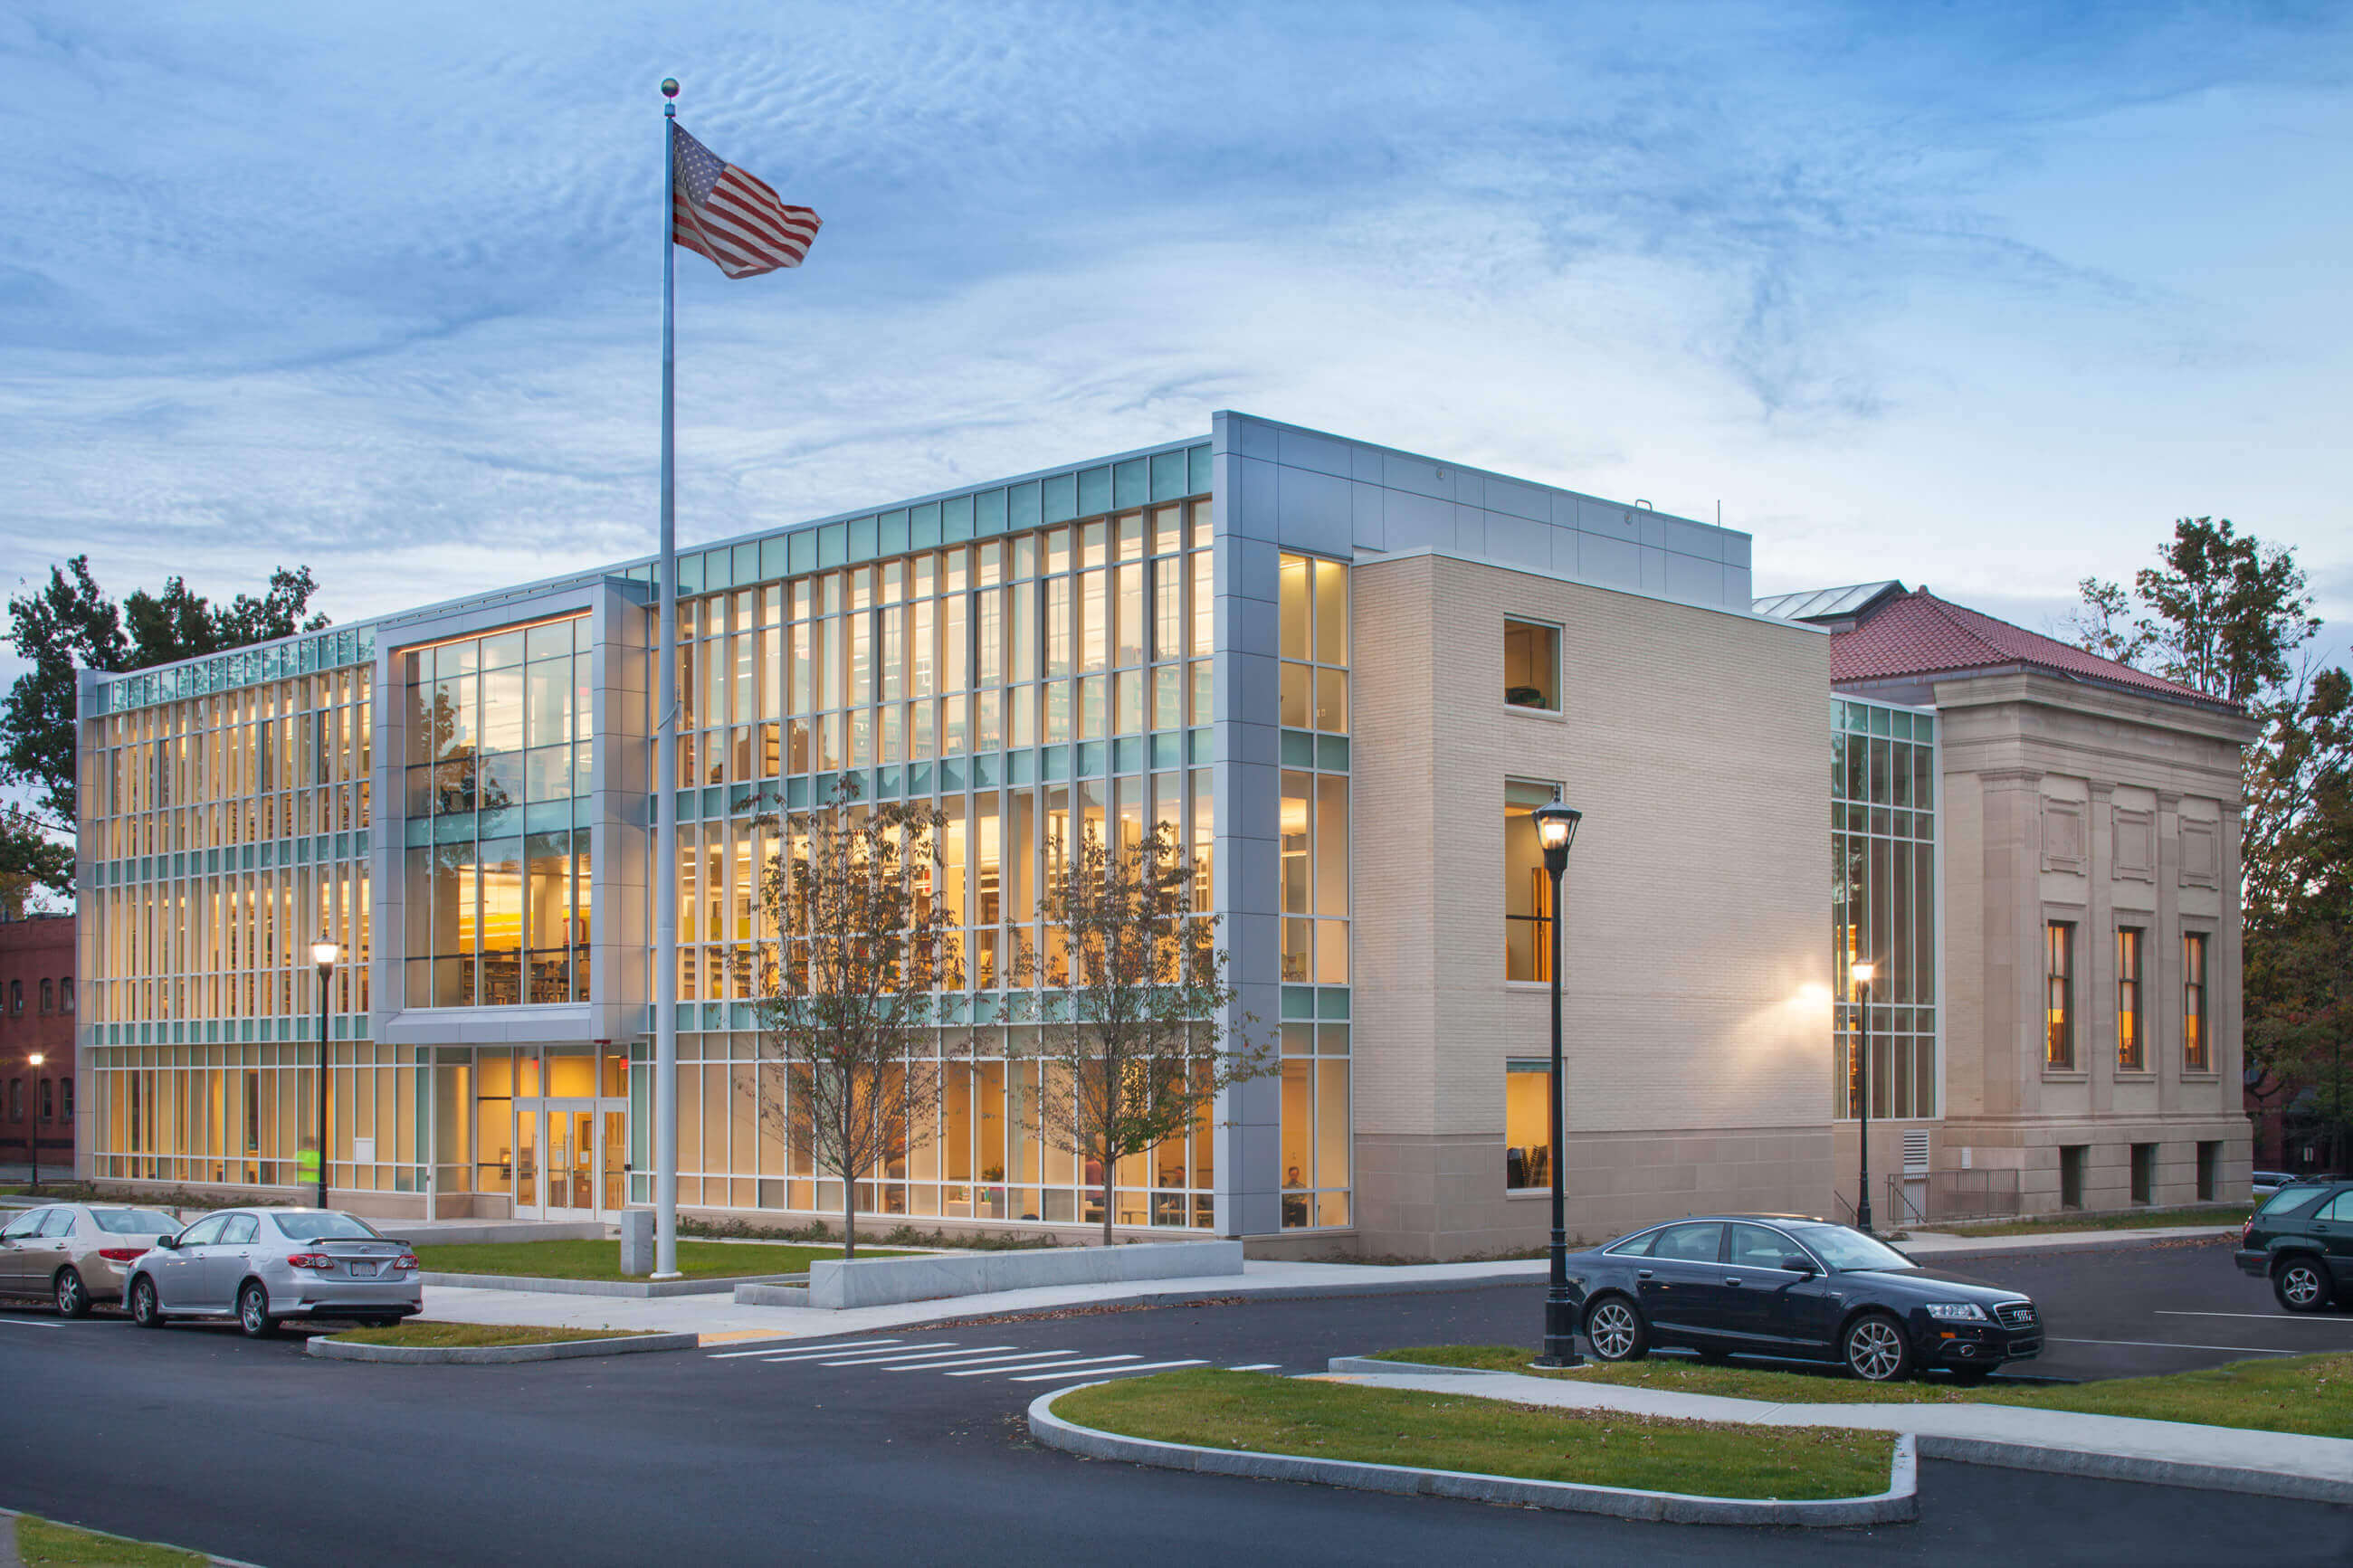 Modern glass and stone addition blends to the historic library in the right of the frame at dusk.